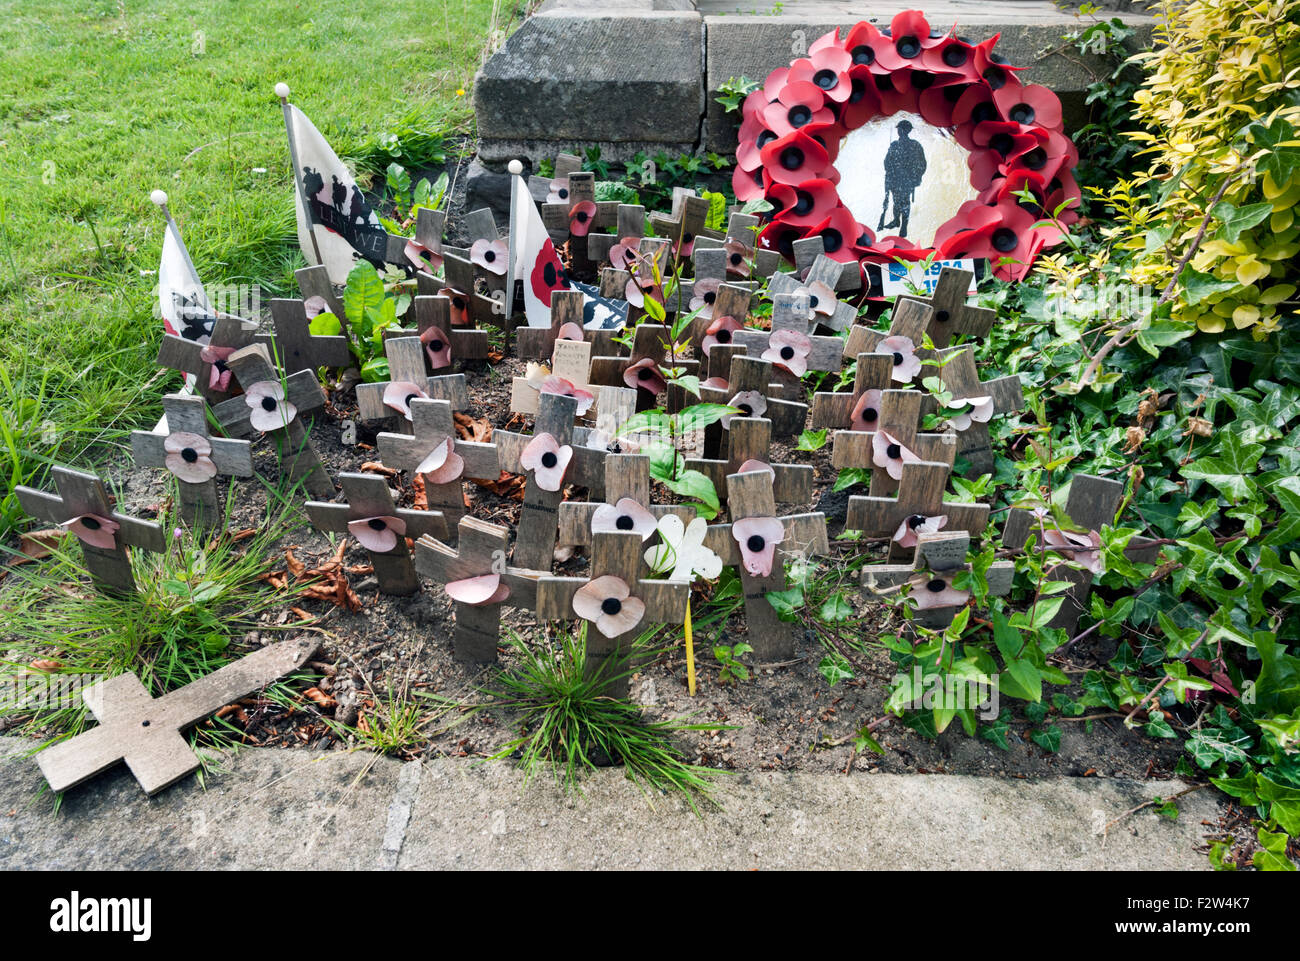 Remembrance at the base of the war memorial, Clitheroe Castle, Lancashire, UK - Stock Image